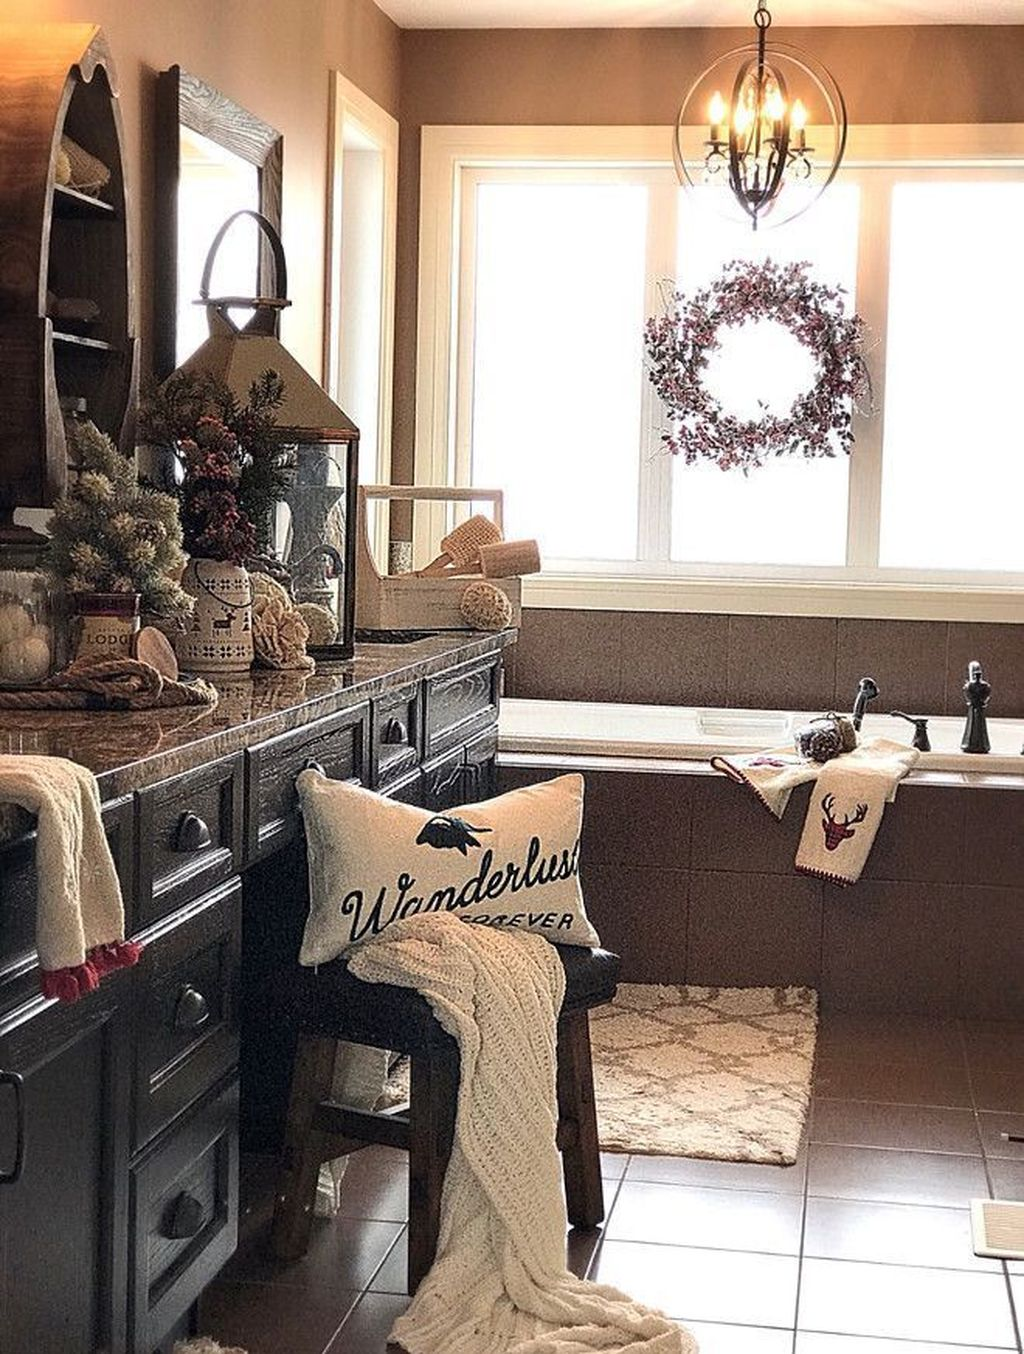 The Best Winter Bathroom Decor Ideas 16